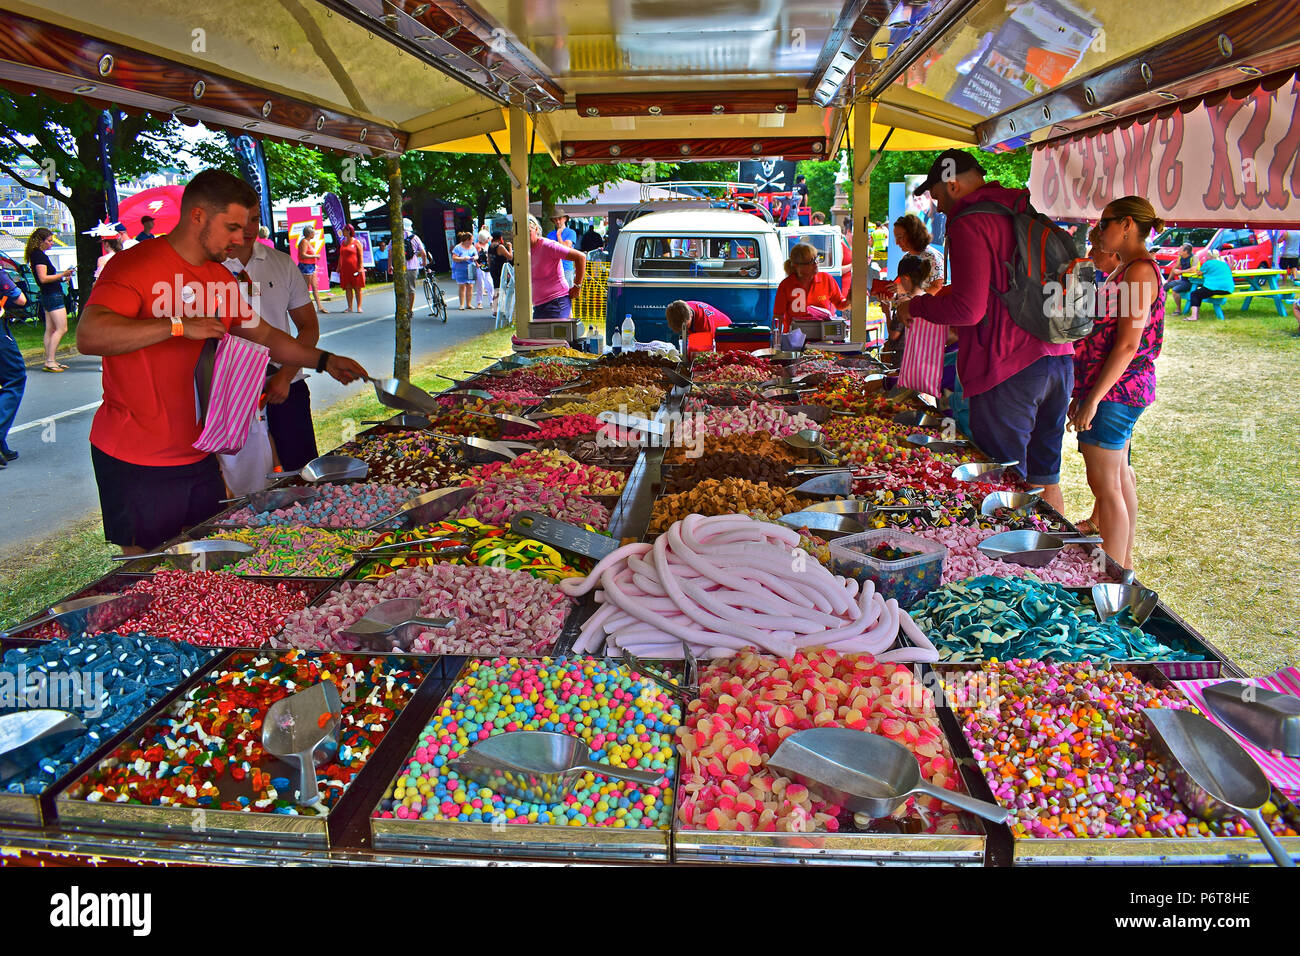 An exotic & colourful display of sweets & confectionary on a covered Stall at Swansea Air Show 2018 - Stock Image